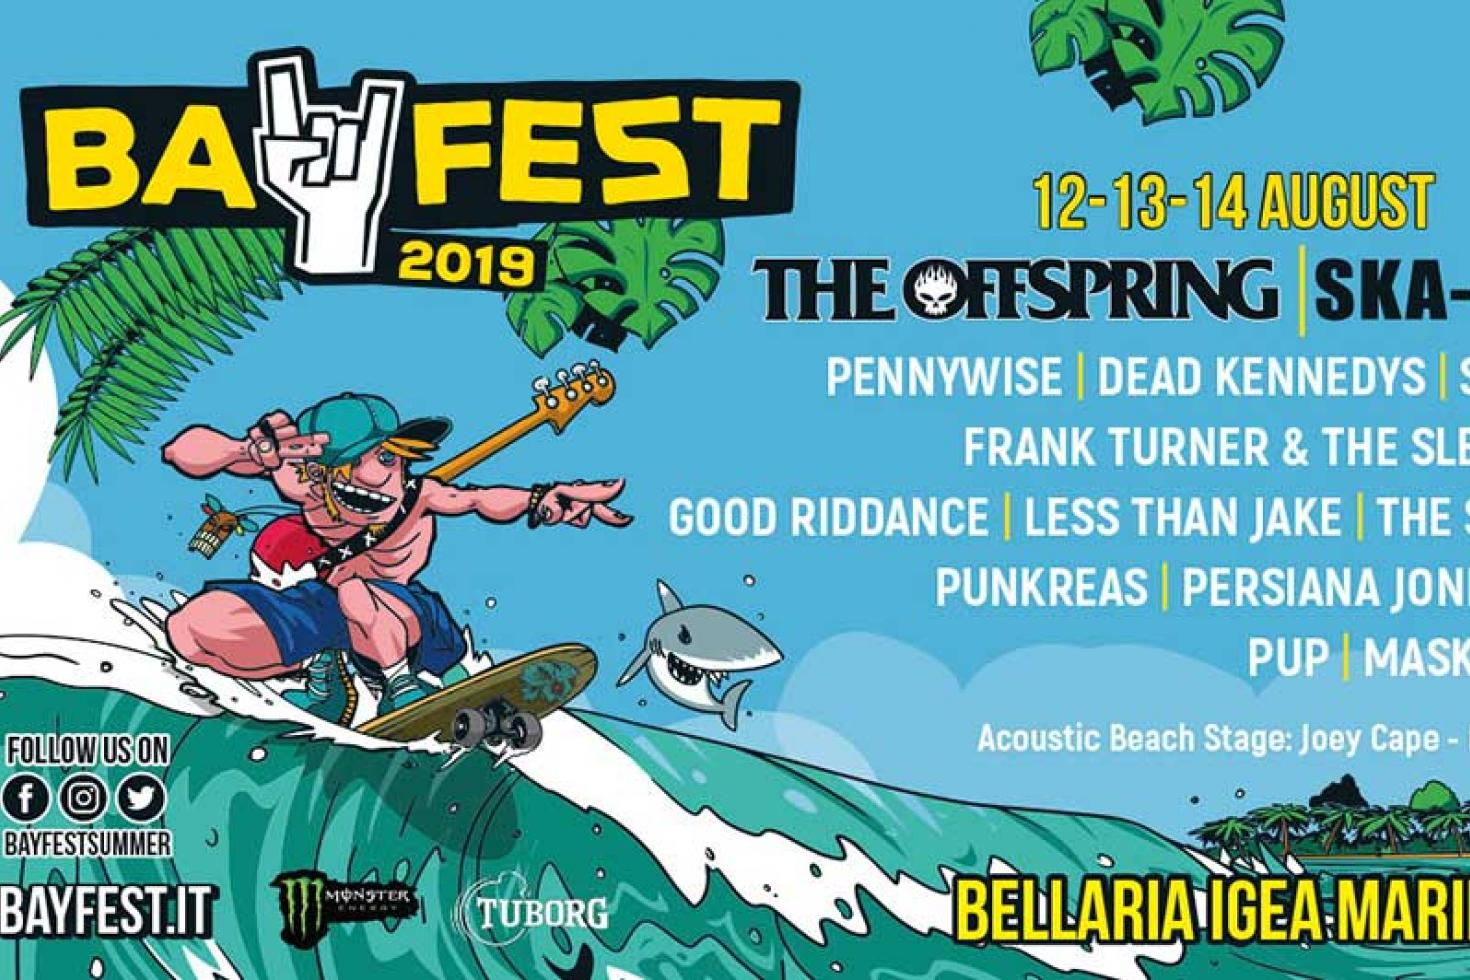 Bay Fest is back even bigger and better than before